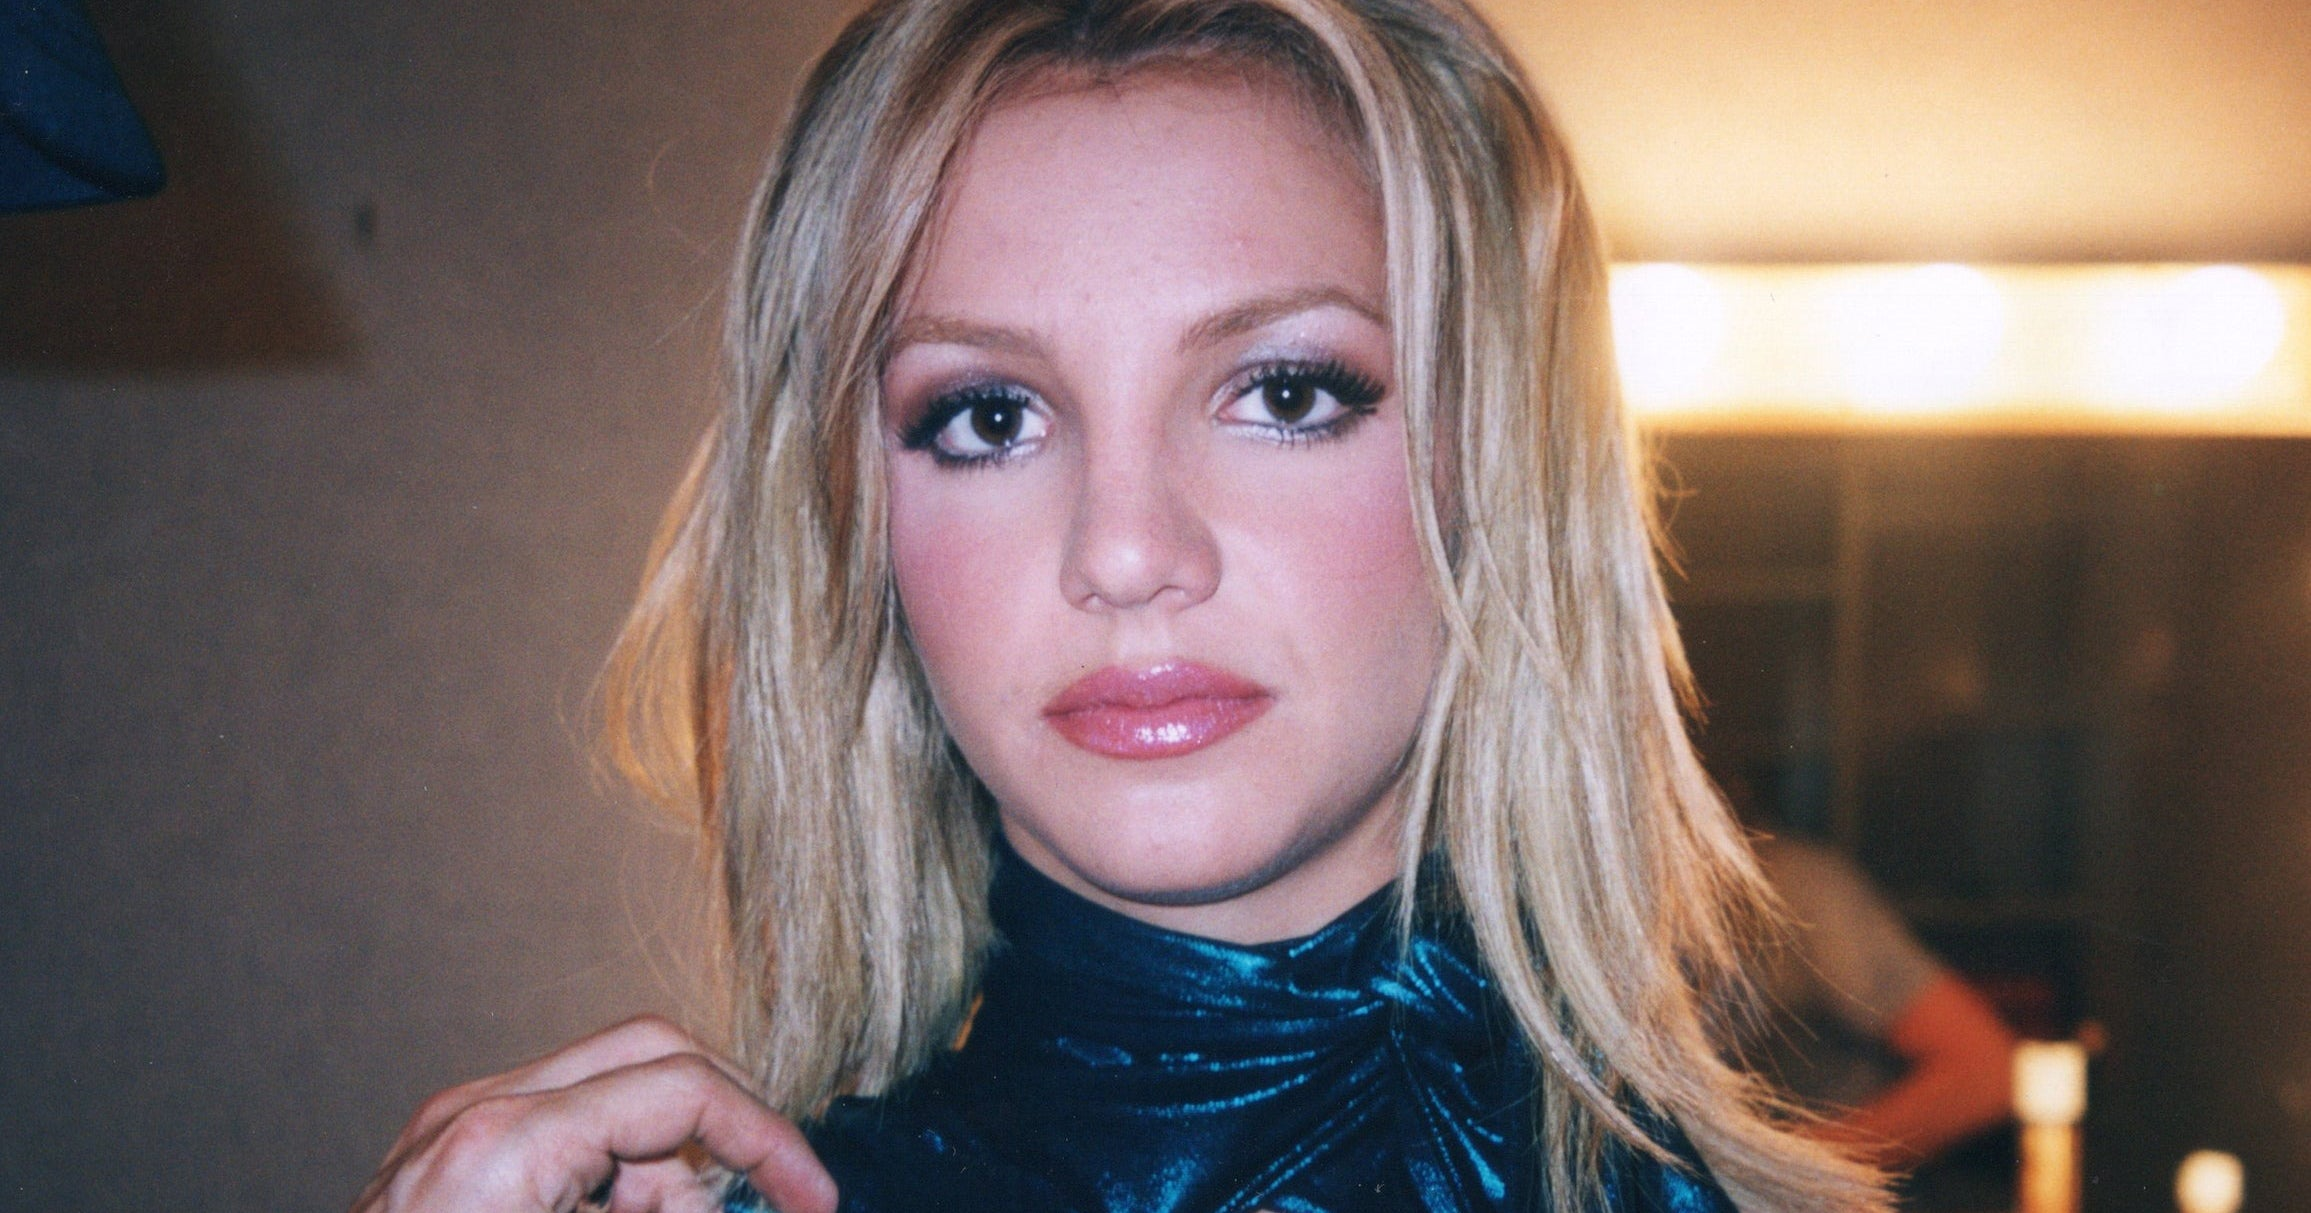 www.refinery29.com: The Britney Spears Doc Is Finally Airing In Canada. Here's How To Watch